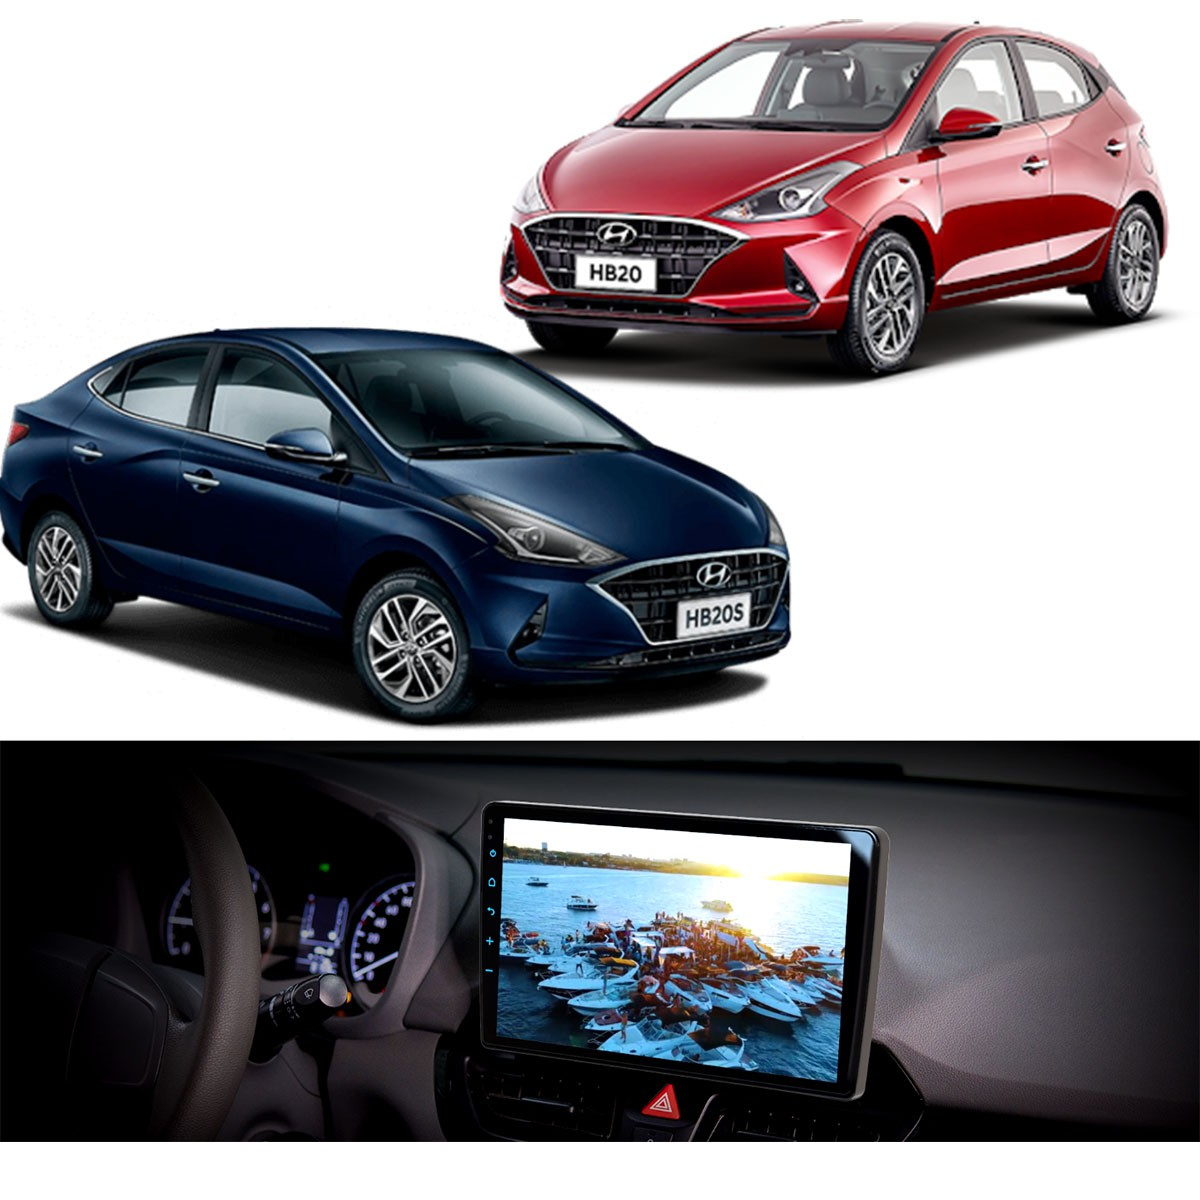 Central Multimidia Hyundai HB20 Tela de 10.1 com IPS Android 10 Bluetooth 4.0  - FT-MM-AND10.1HY